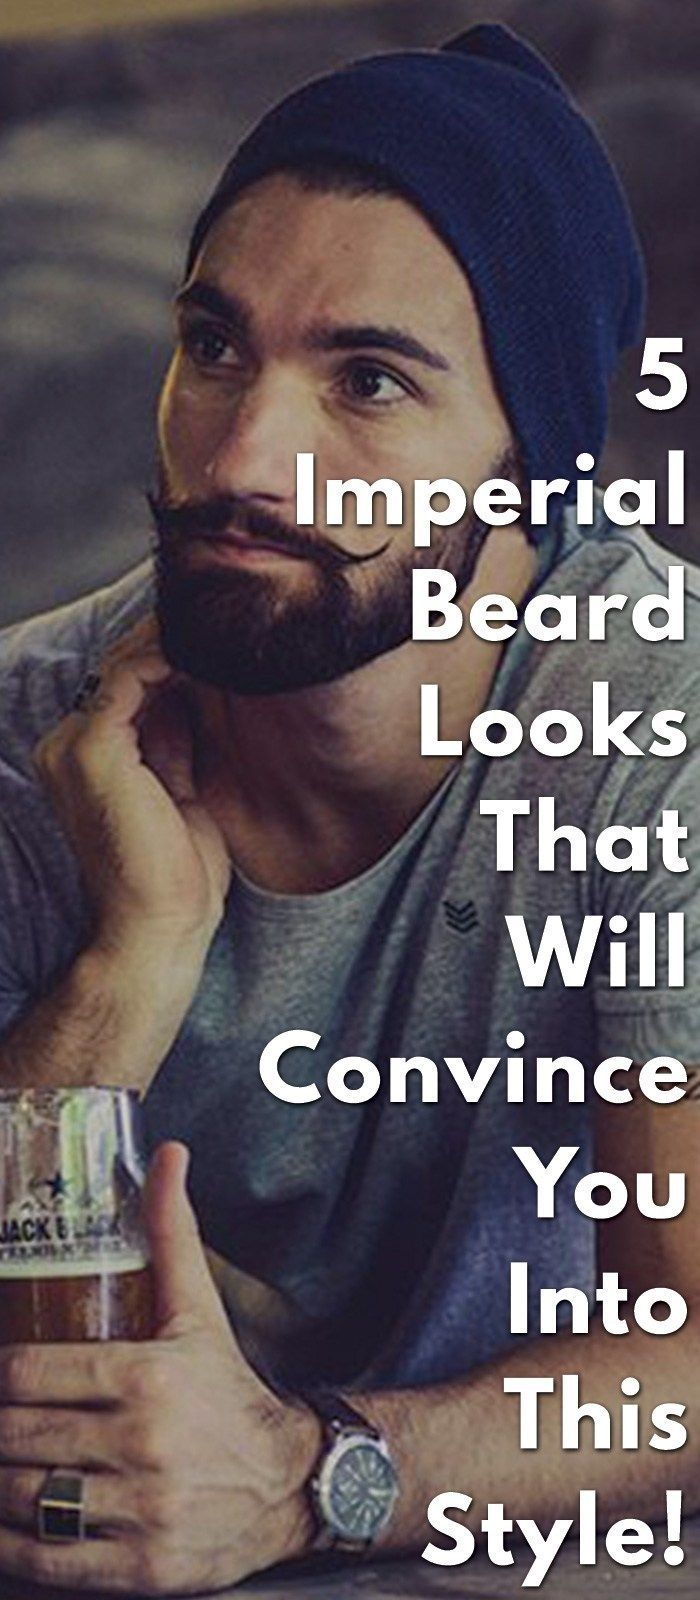 13 Imperial Beard Looks That Will Convince You Into This Style  Imperial Beard Look 5 Styles That Will Convince You to Opt This Beard